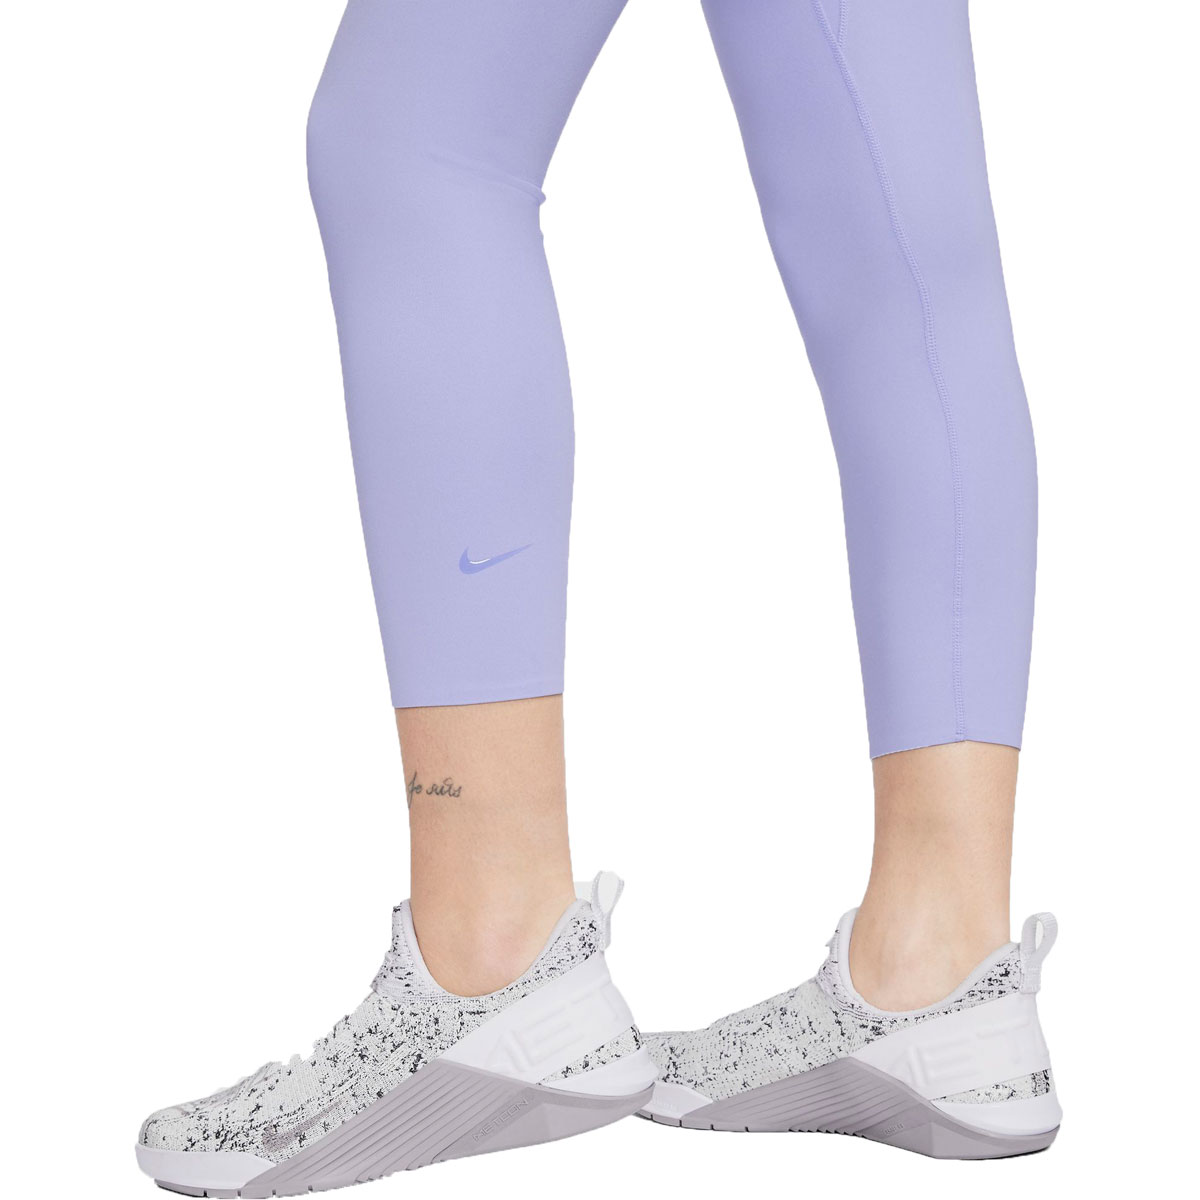 Women's Nike One Luxe Cropped Tights - Color: Light Thistle/Clear - Size: XS, Light Thistle/Clear, large, image 3